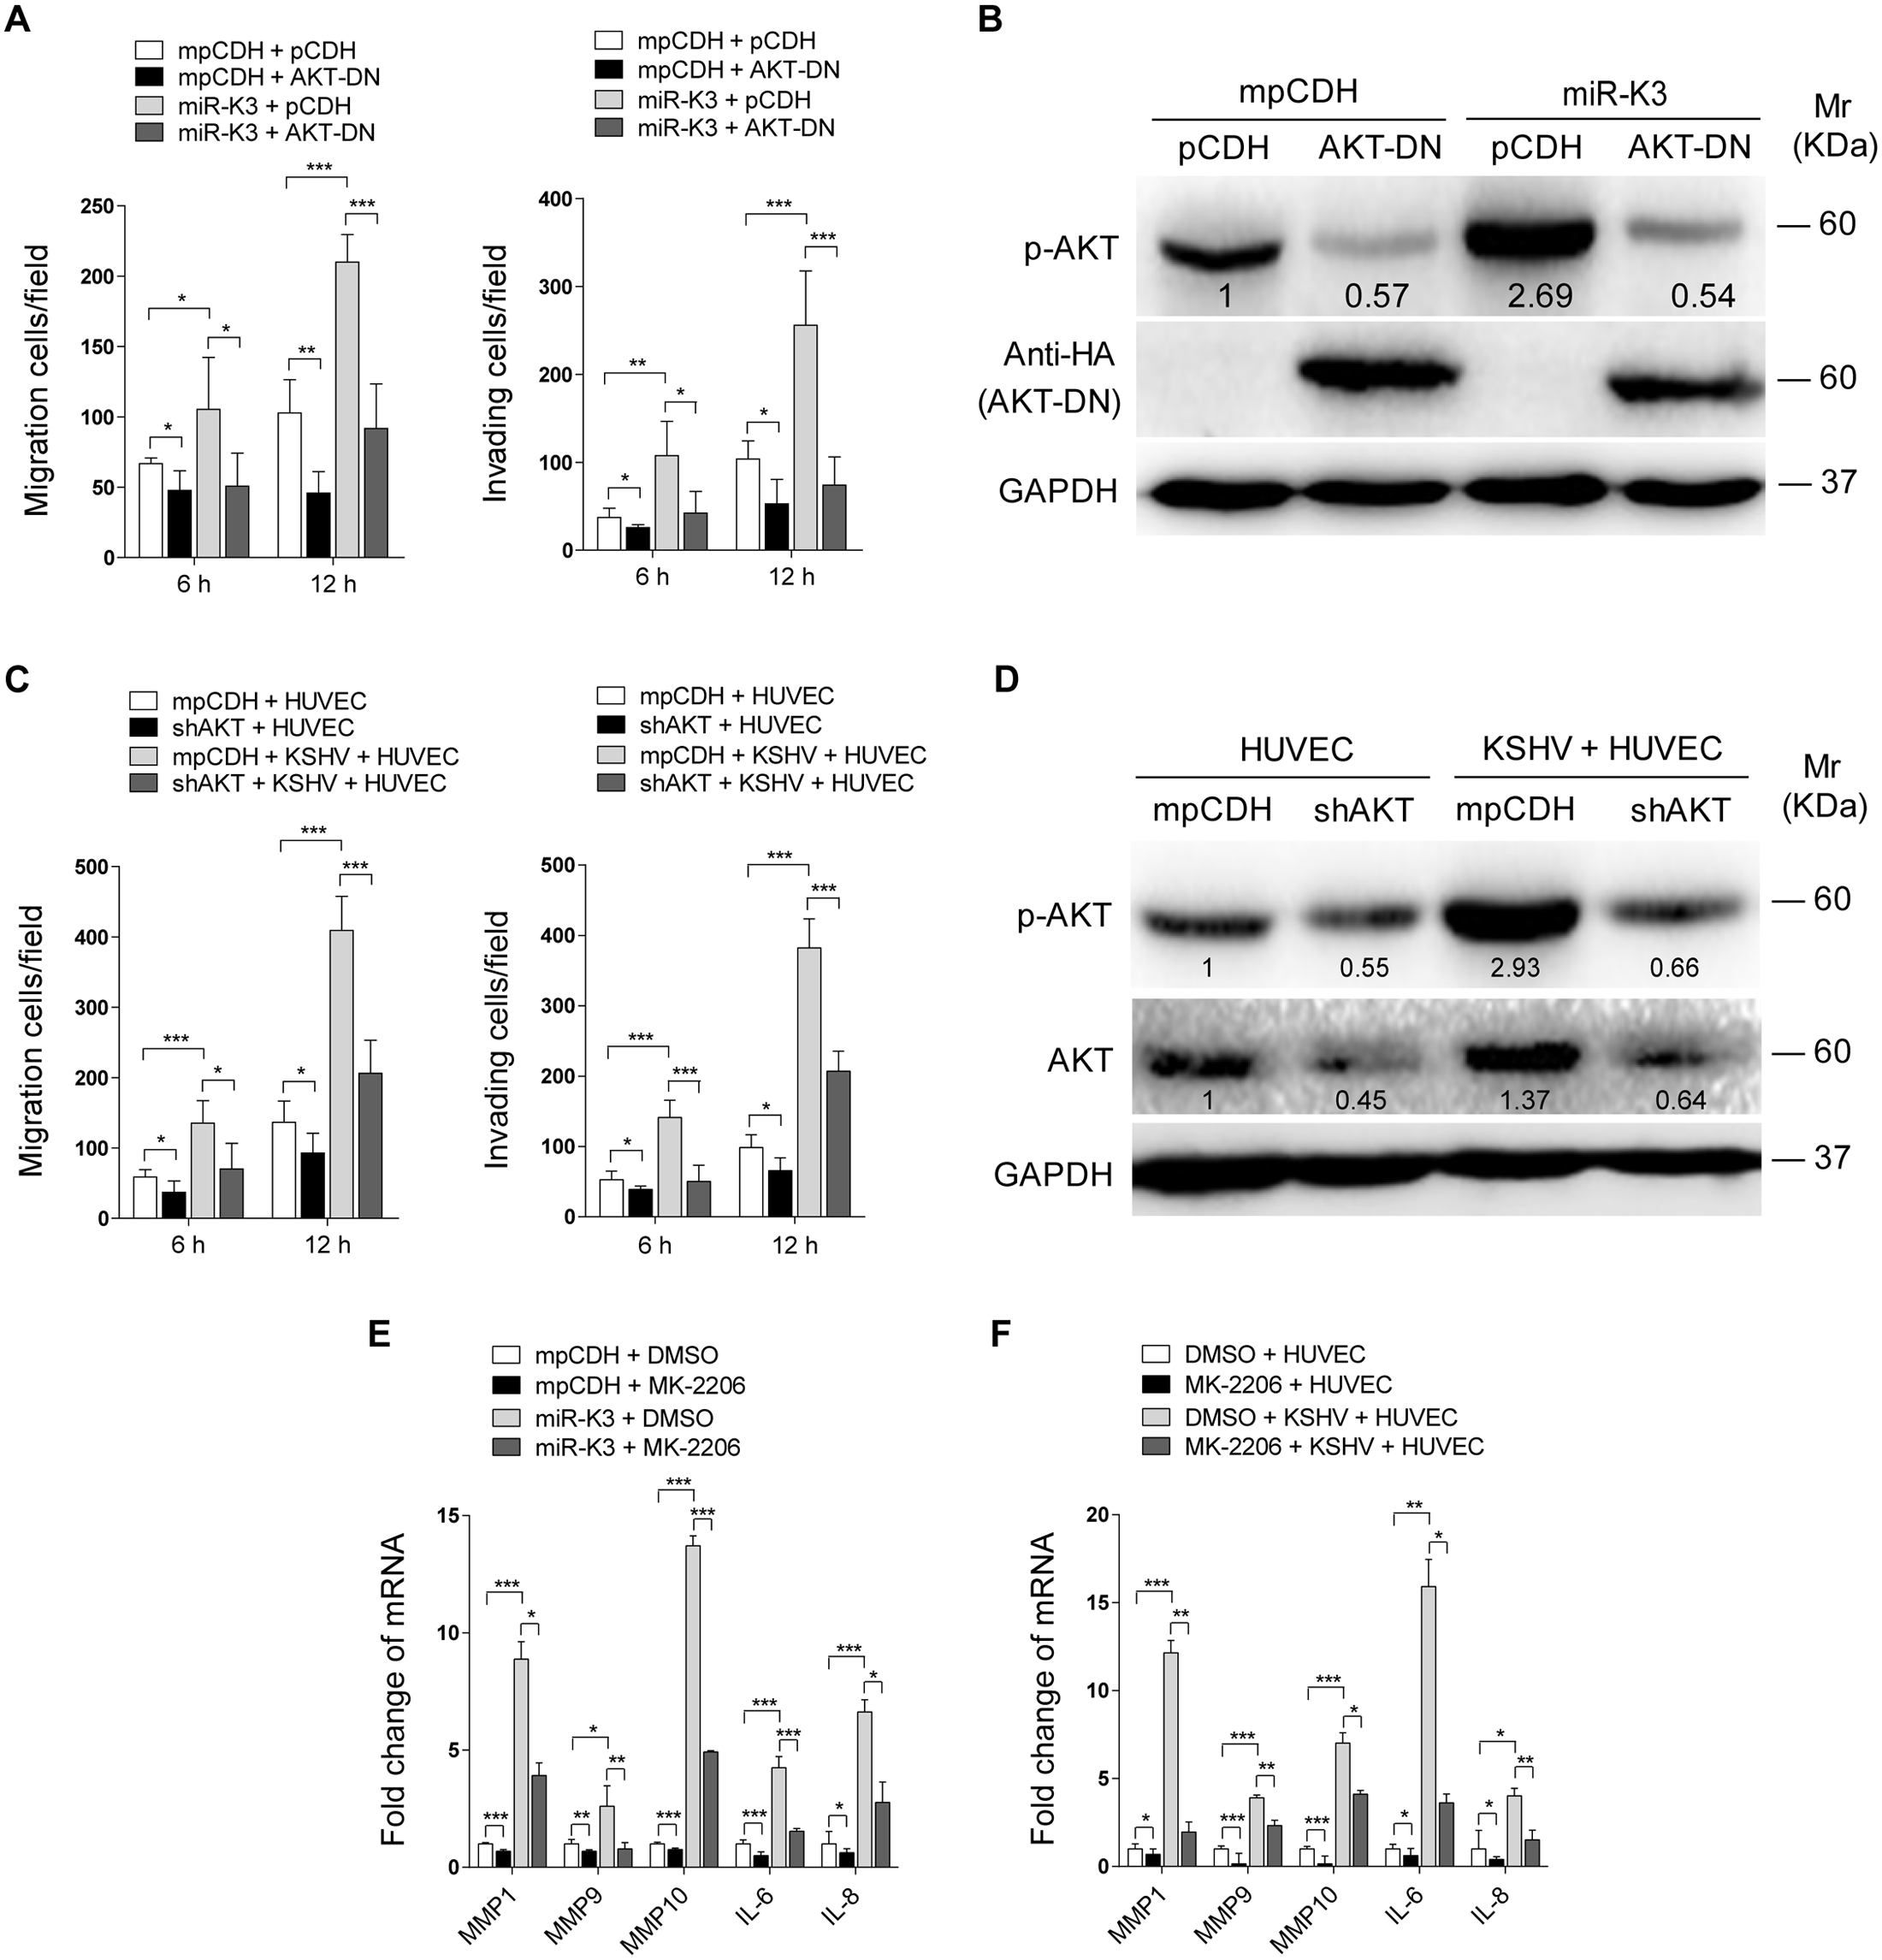 Activation of AKT is necessary to miR-K3-induced endothelial cell migration and invasion.